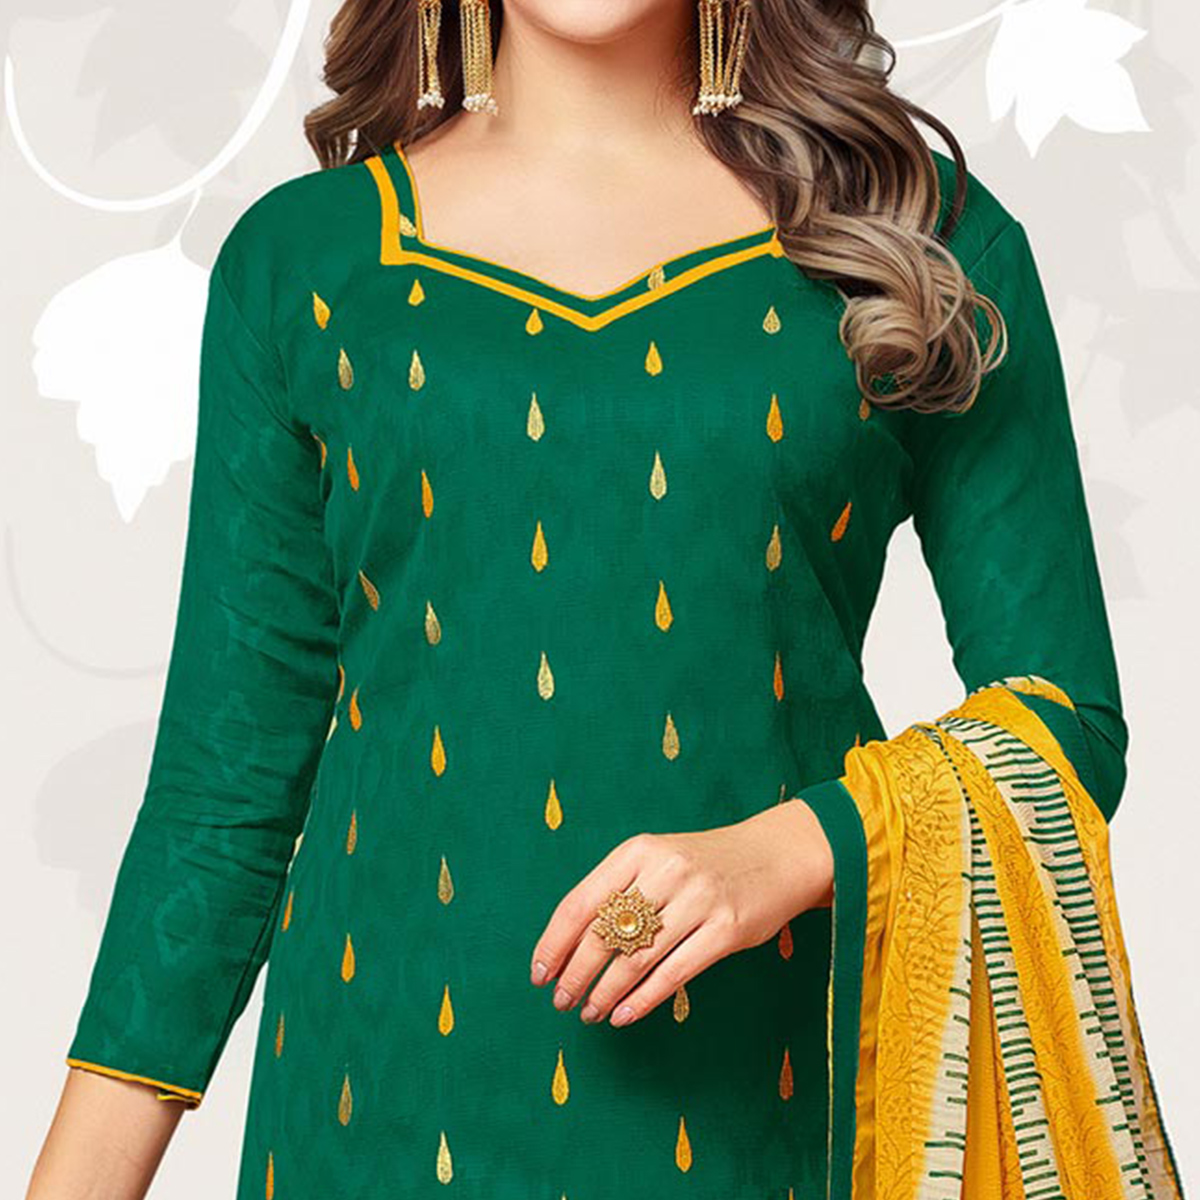 Stunning Green Colored Casual Embroidered Jacquard Suit